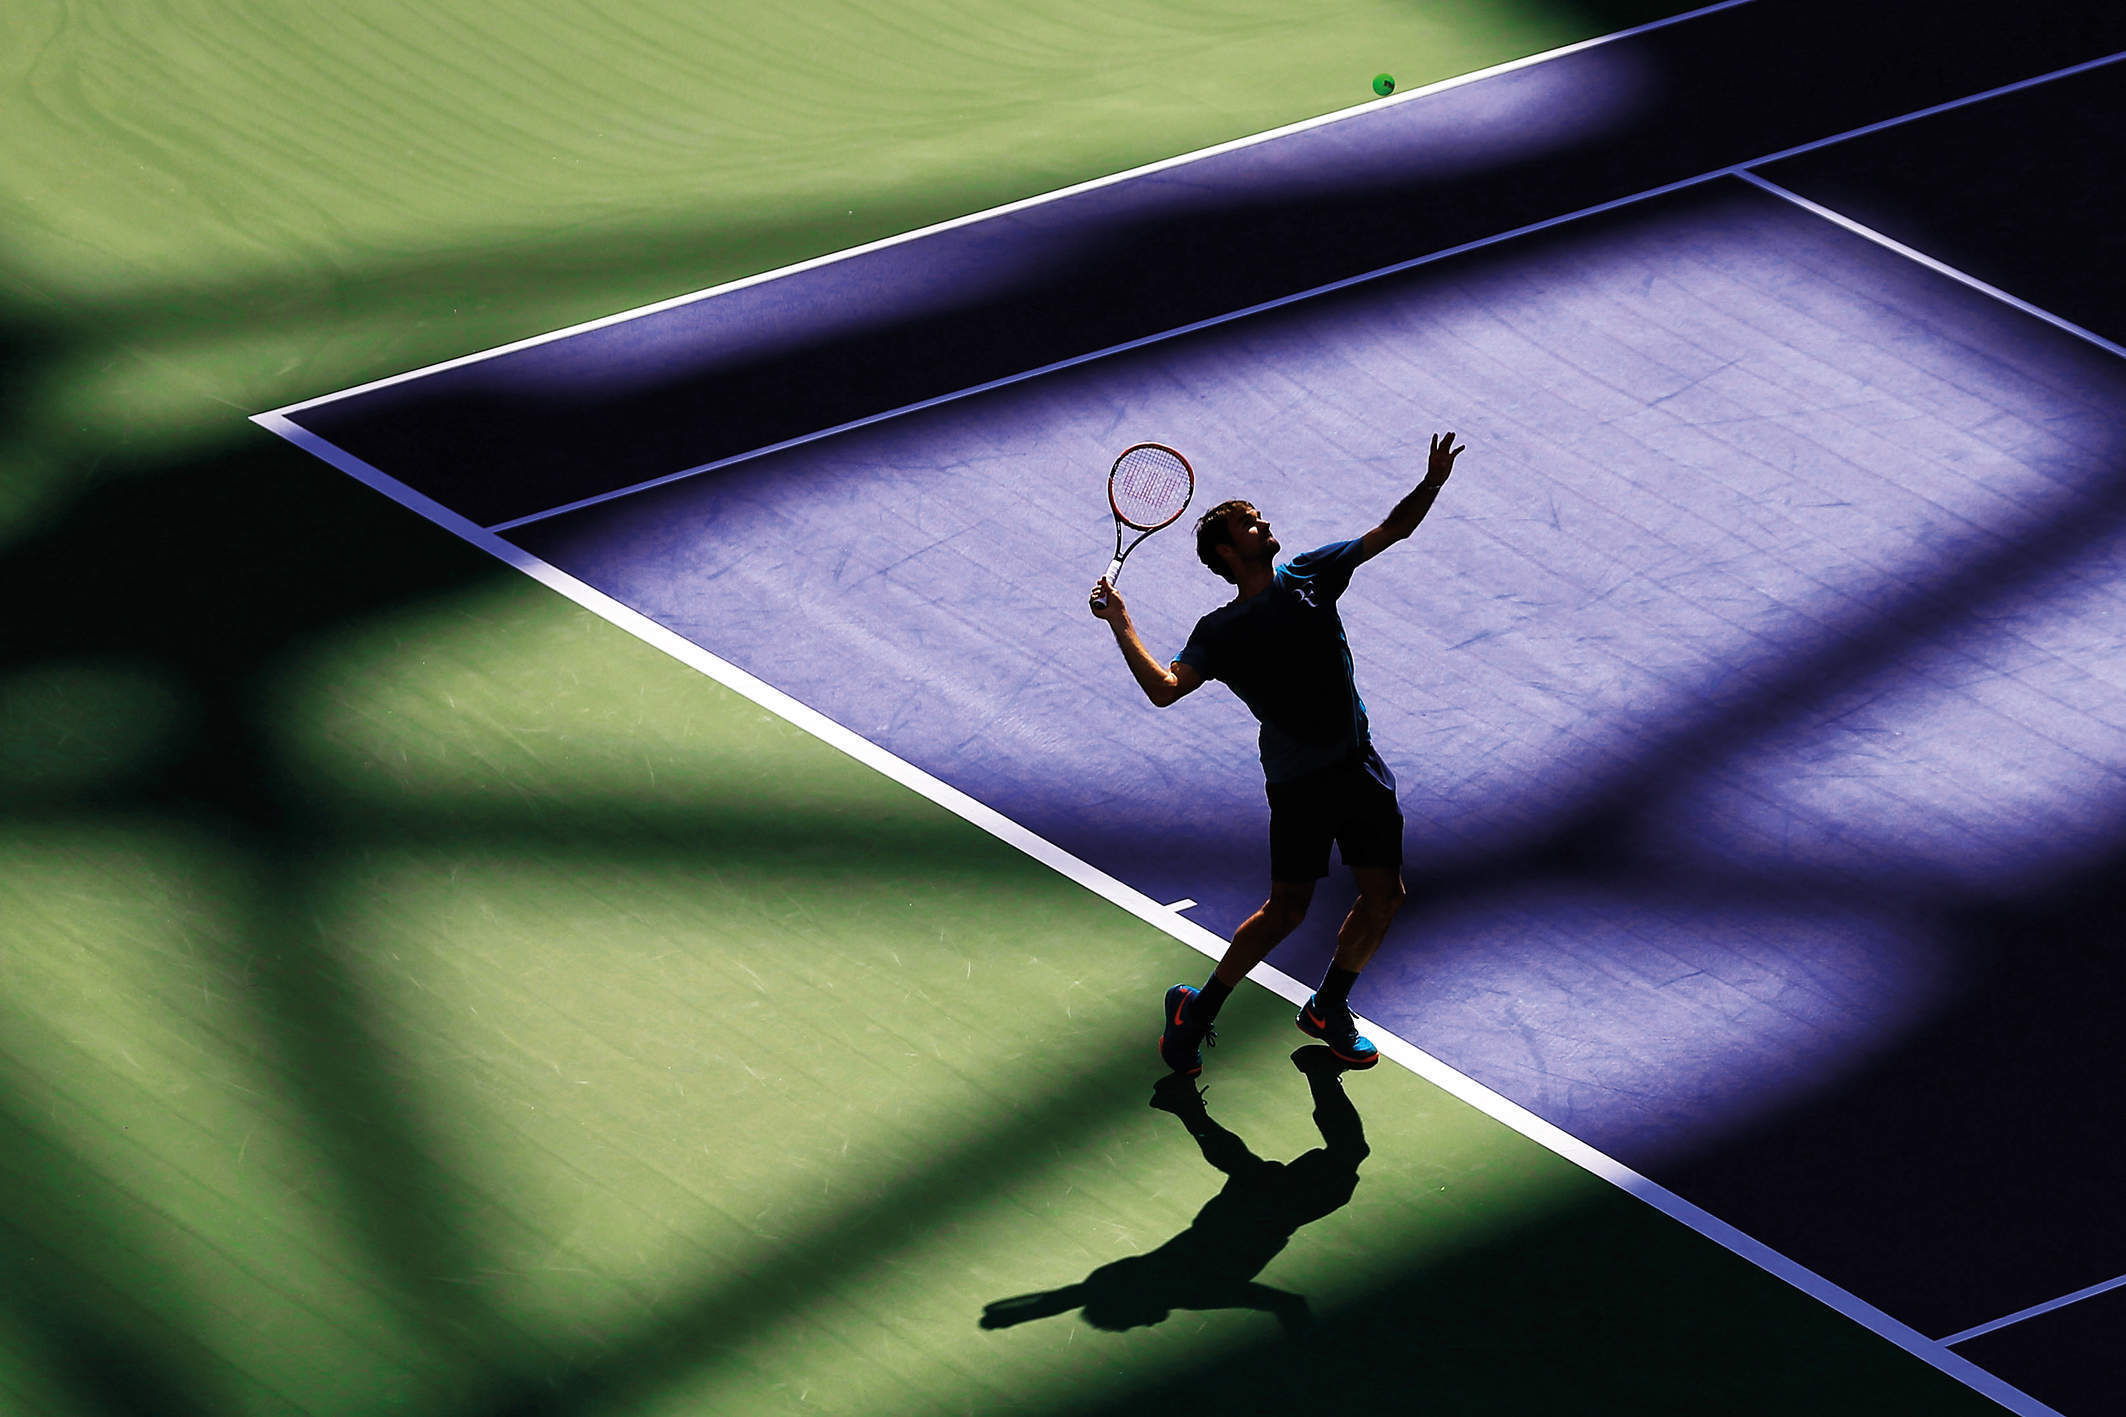 """Worshipping the tennis god: is Roger Federer really an """"artist""""?"""